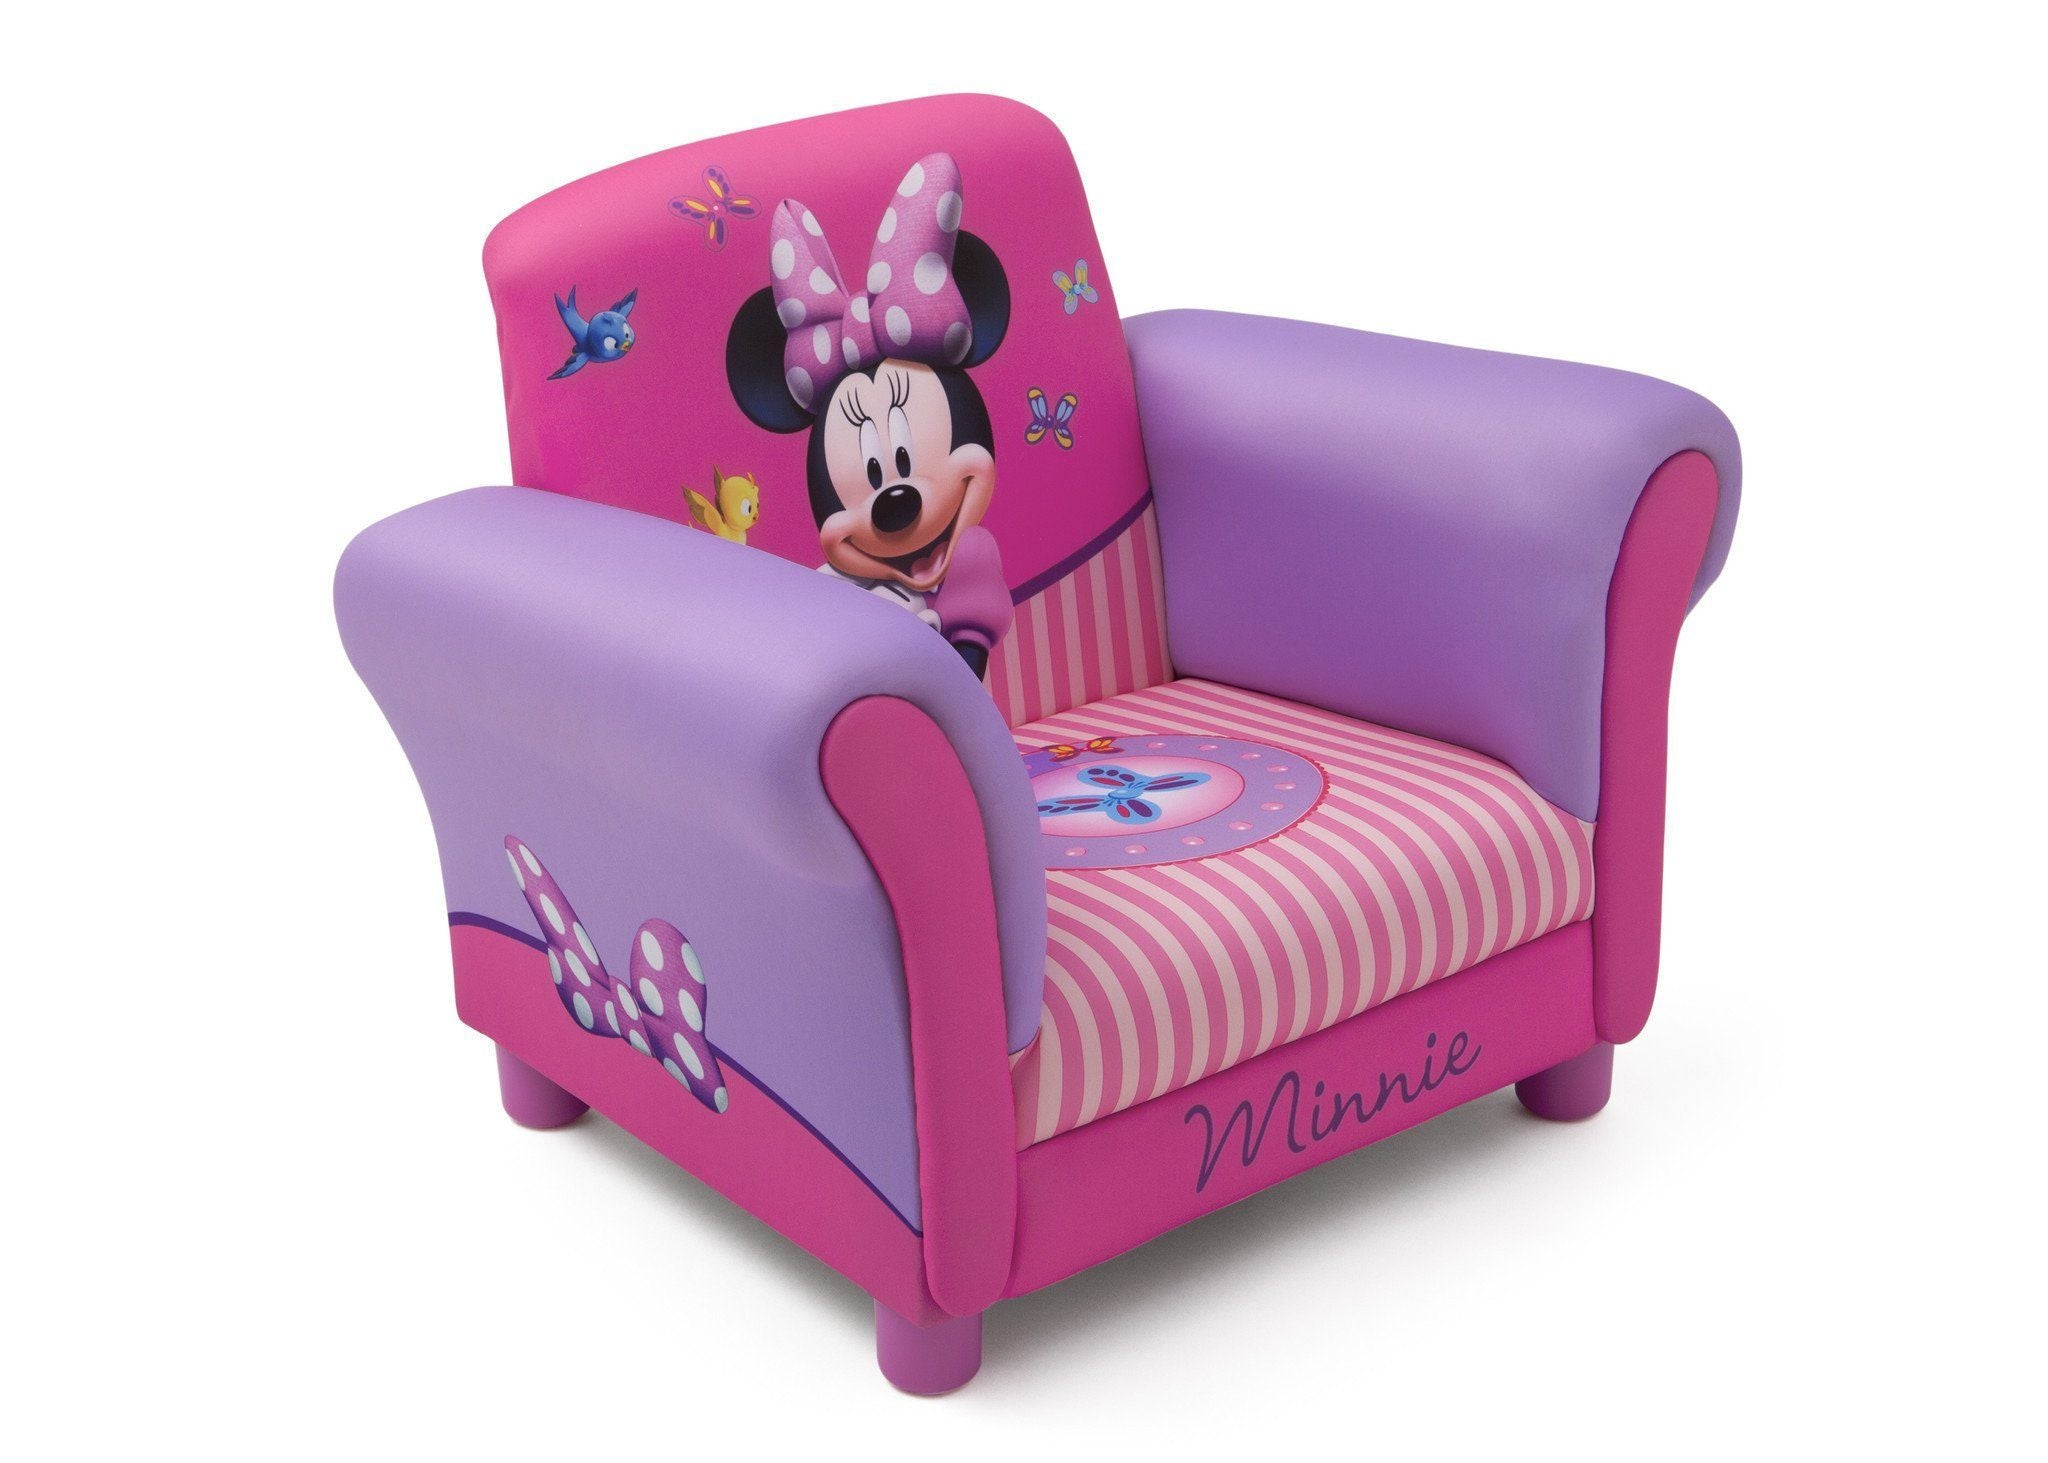 New Minnie Mouse Upholstered Chair | Delta Children RU38